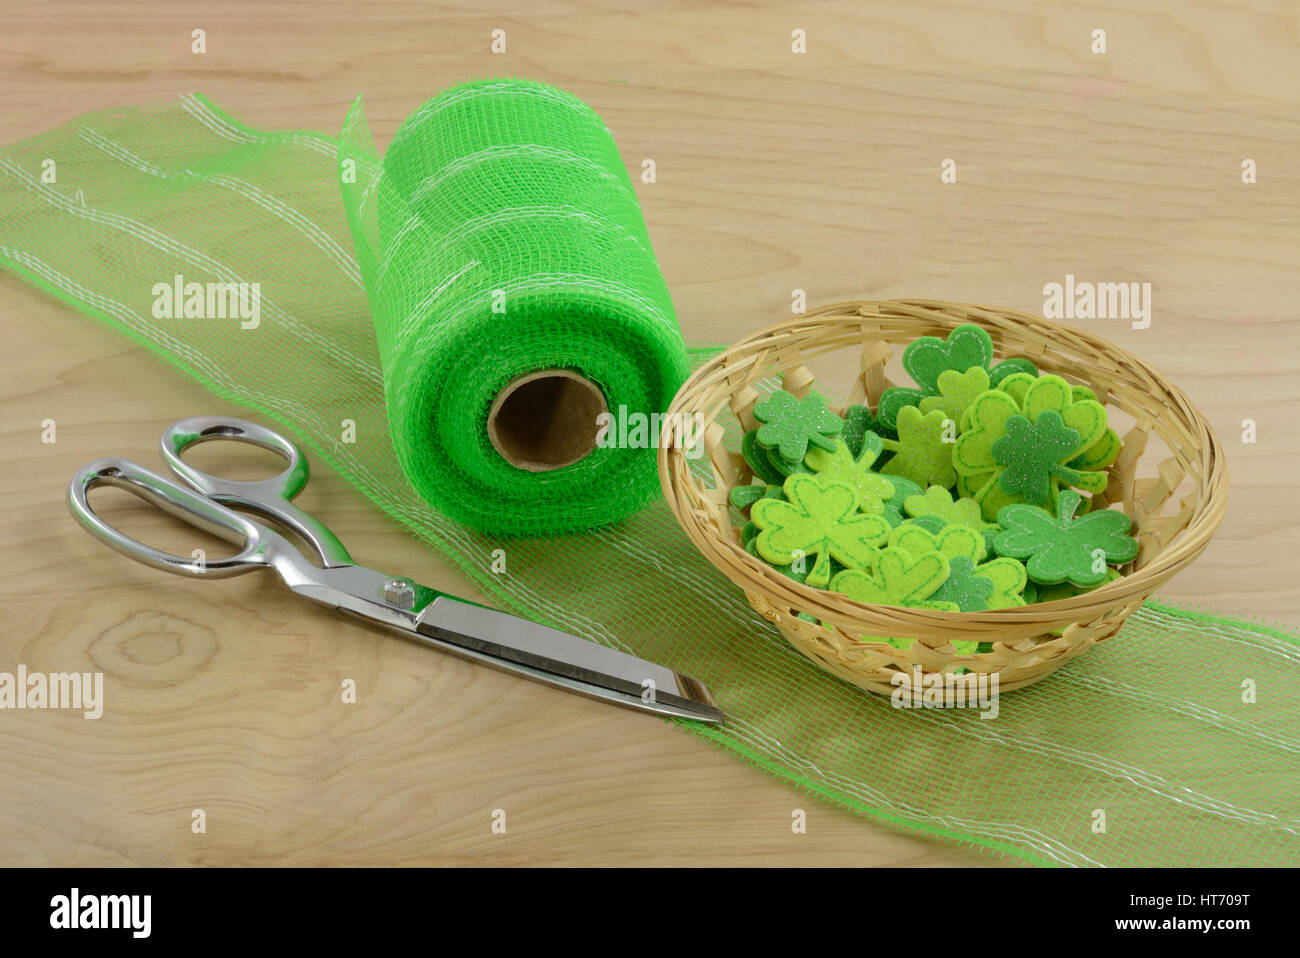 Crafting Project for Saint Patrick's Day with green ribbon and shamrocks - Stock Image